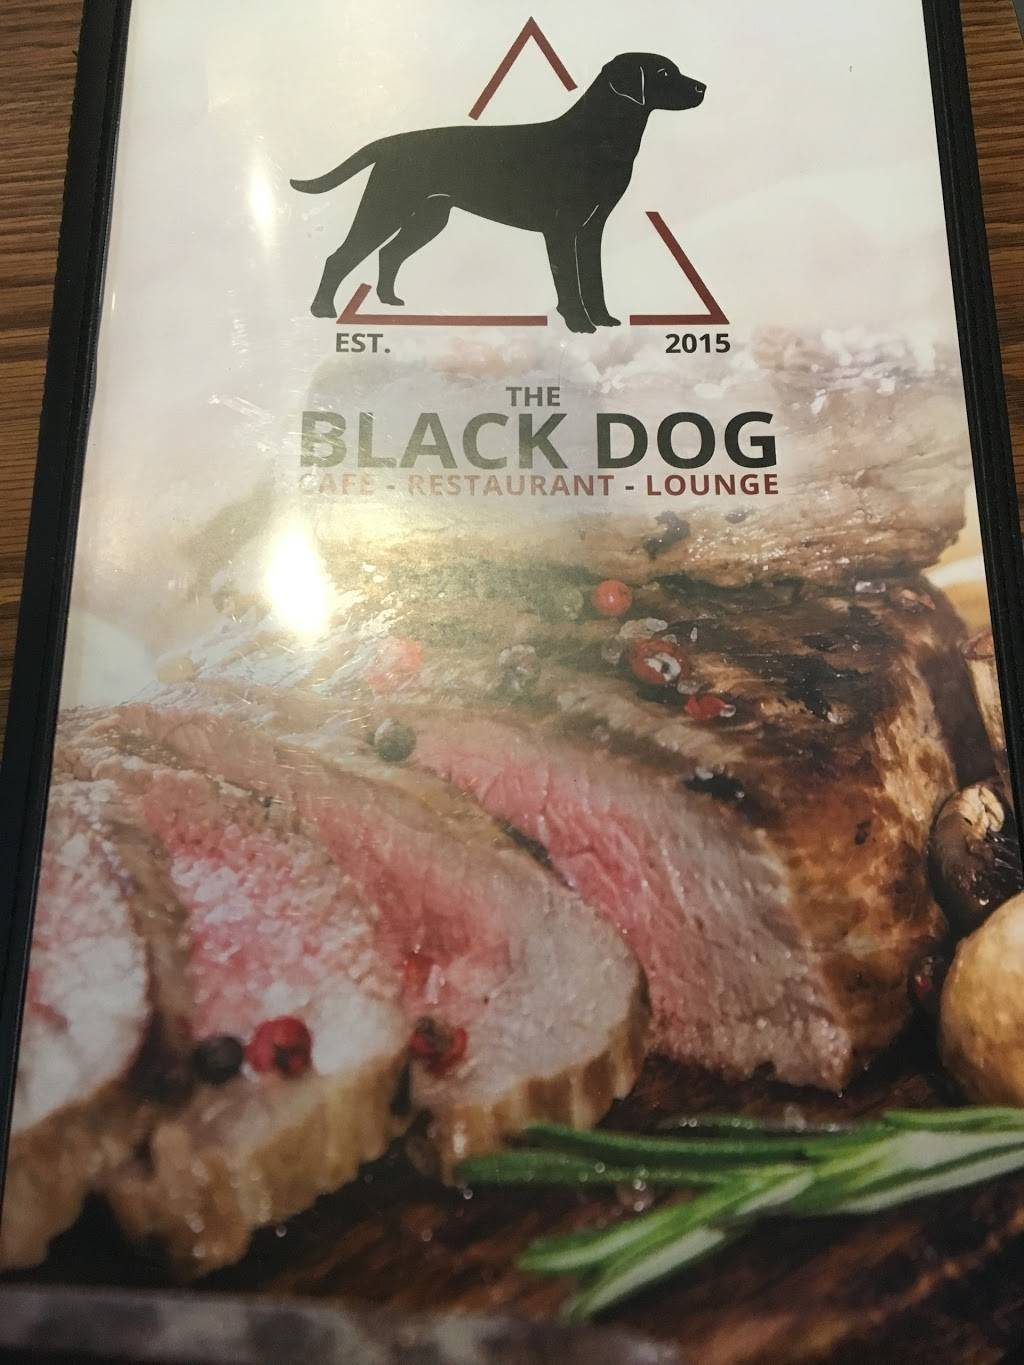 The Black Dog Cafe - Restaurant - Lounge | restaurant | Clarington, ON L0B, Canada | 9059835070 OR +1 905-983-5070